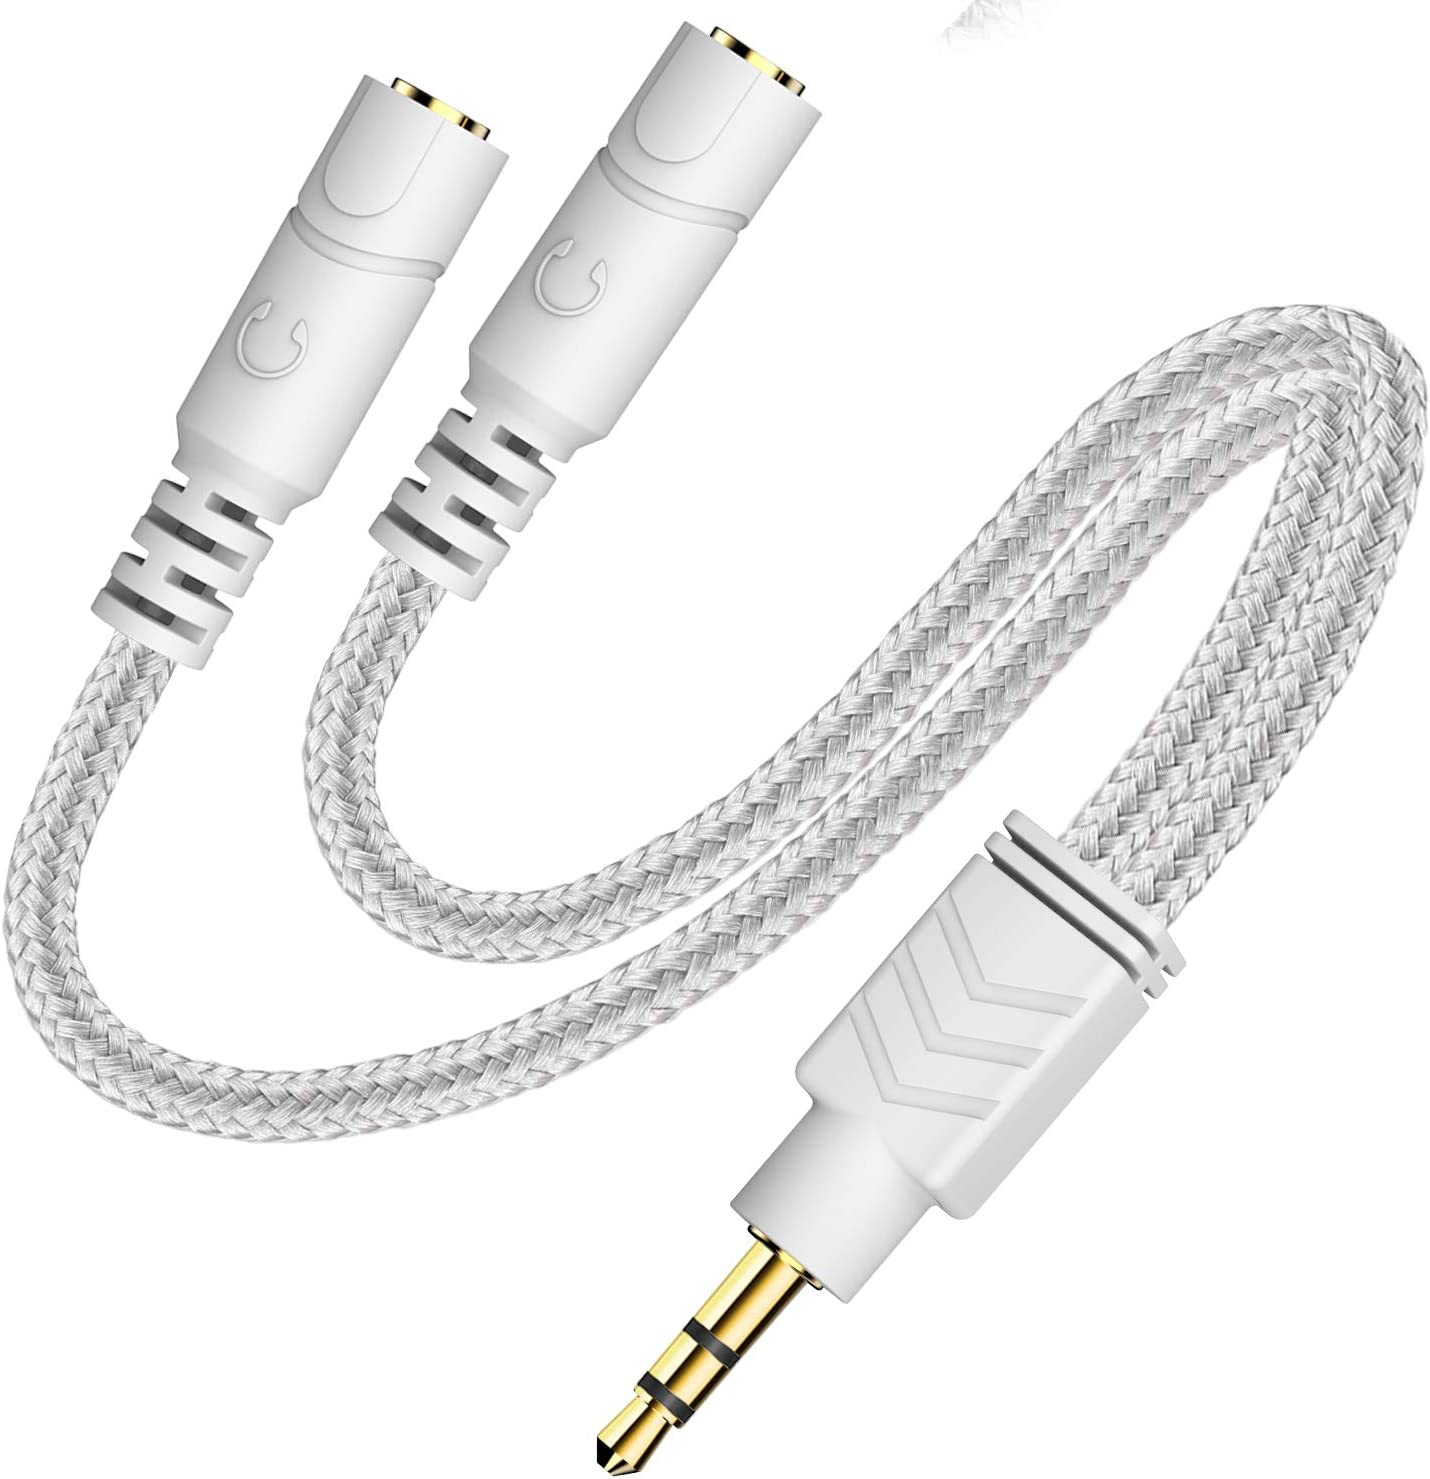 Headphone Splitter, AUX Splitter Cable for Headset Knitted 3.5mm Splitter 2-Way Audio Splitter Stereo Audio Y Cable Produces Equal Audio Output for Headphones Earphones Speakers -DuKabel Joy Series